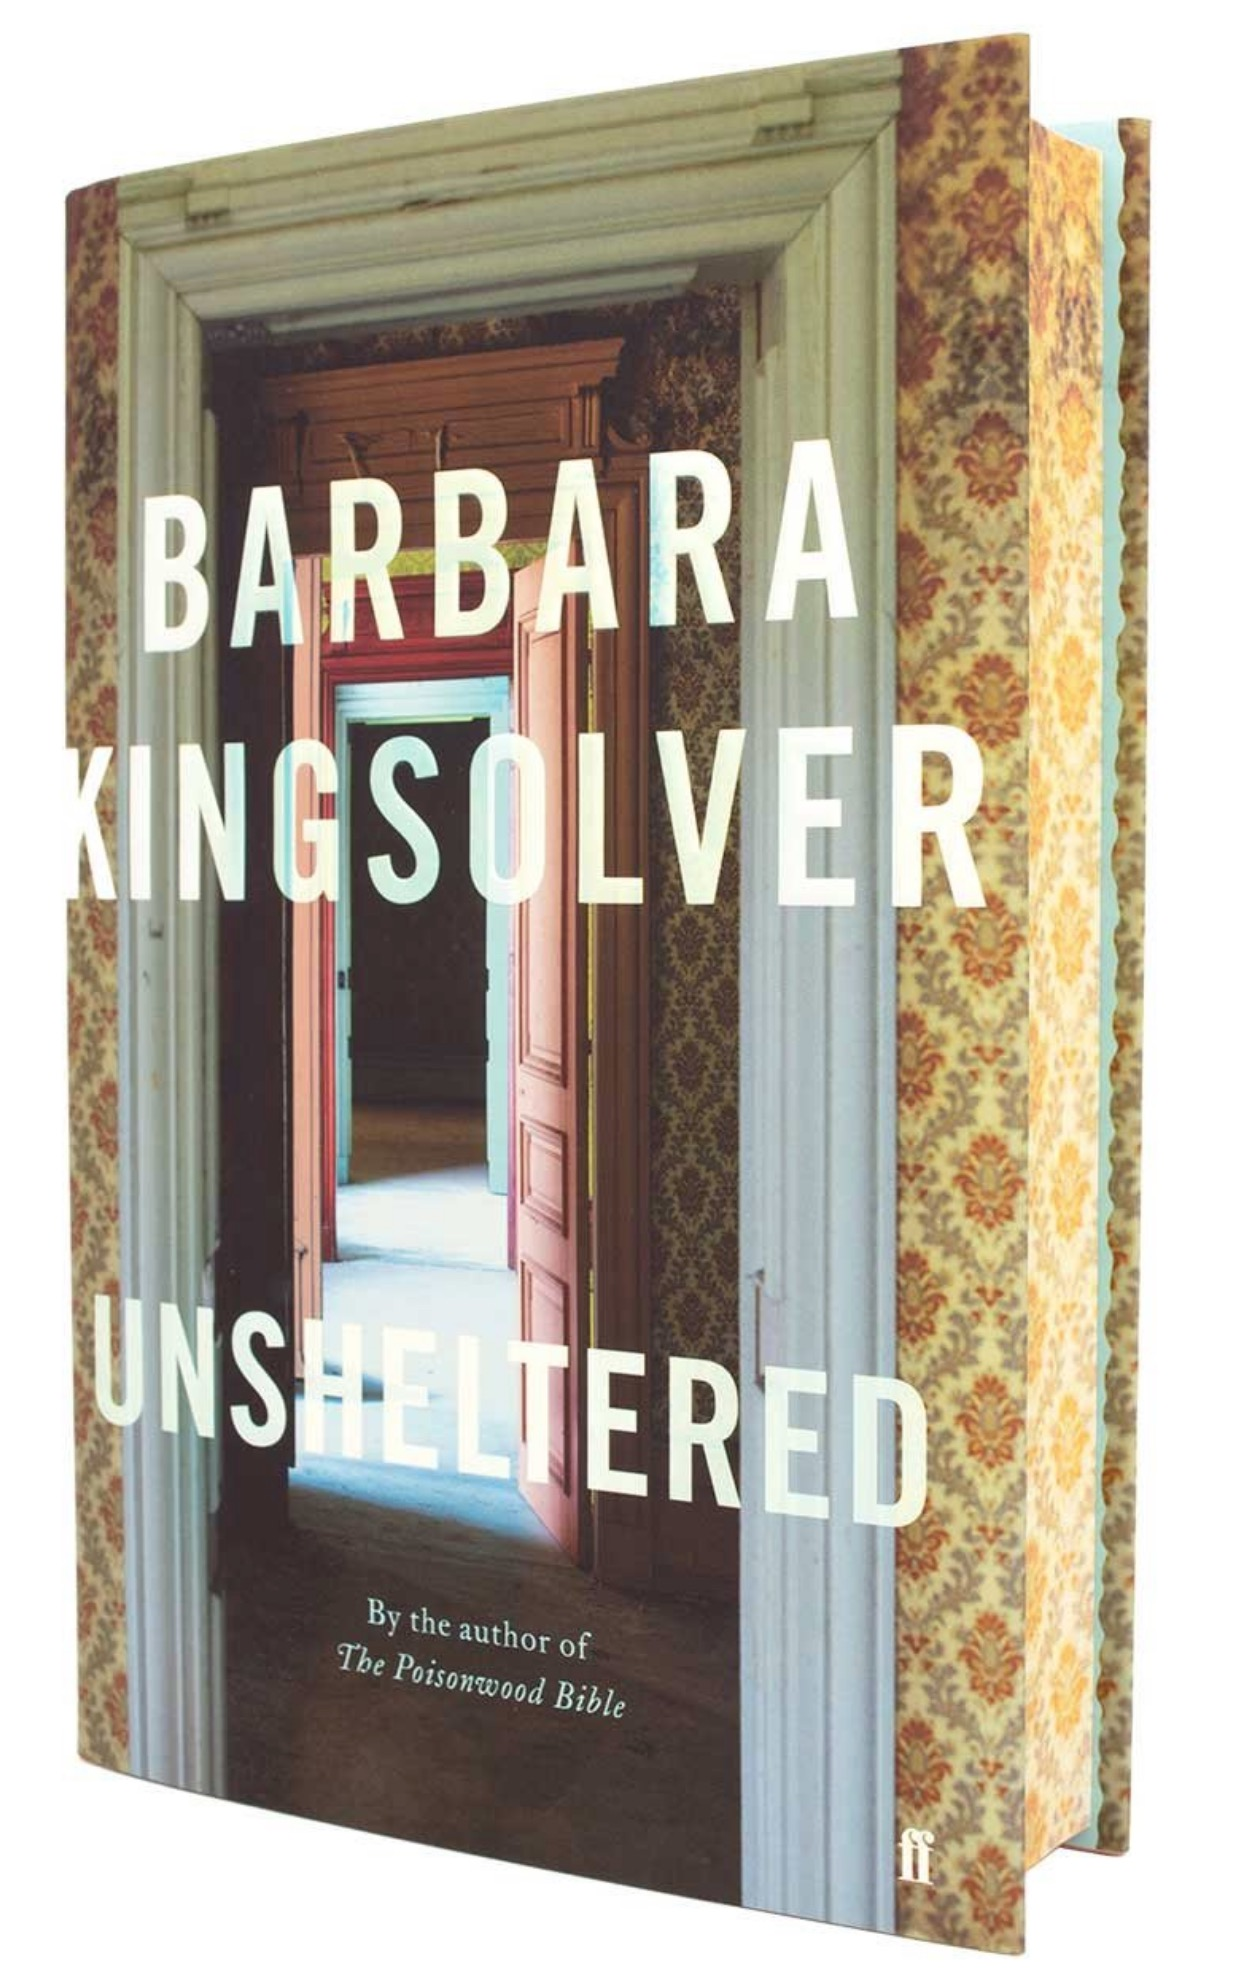 kingsolver unsheltered